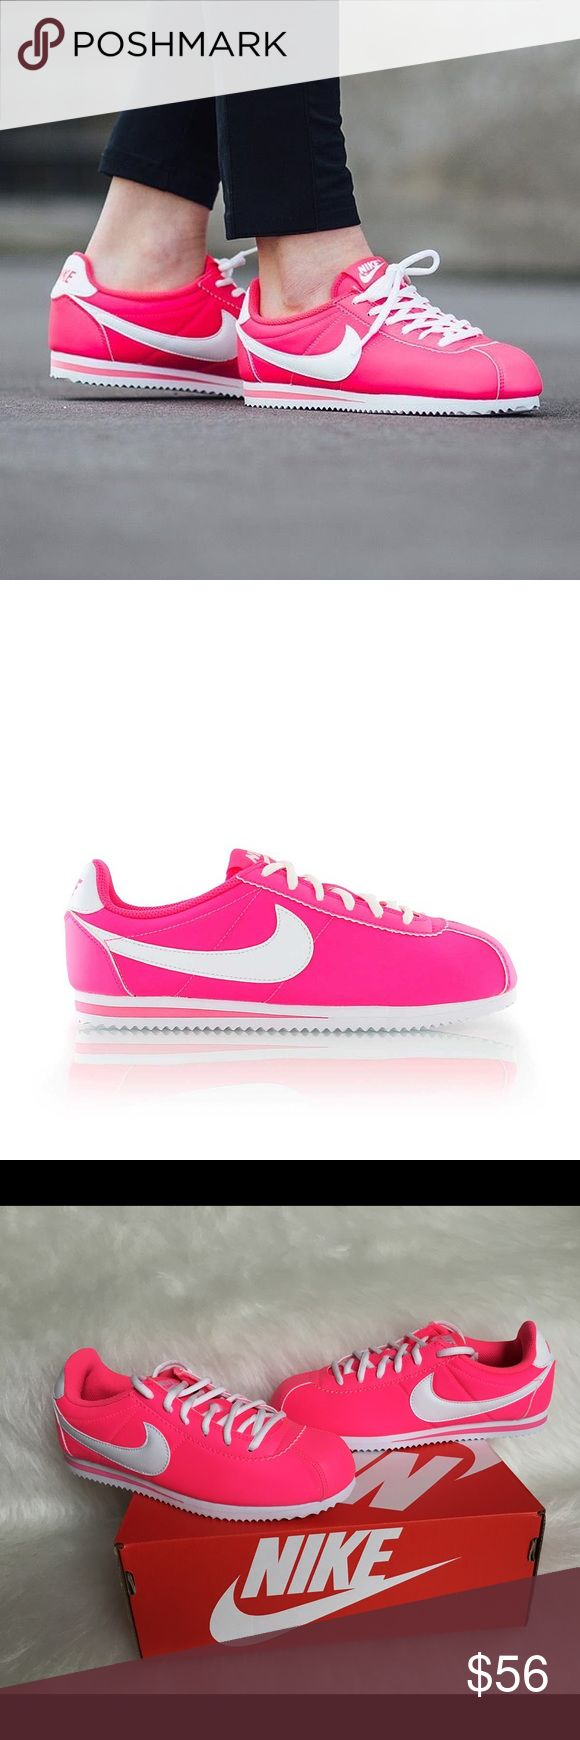 low priced c65ef d15a9 ... Sneakers in Retro Leather NWT Hyper Pink Nike Cortez ♏️ERCARI PRICE    45 SEARCH FOR USERNAME  Candy ...